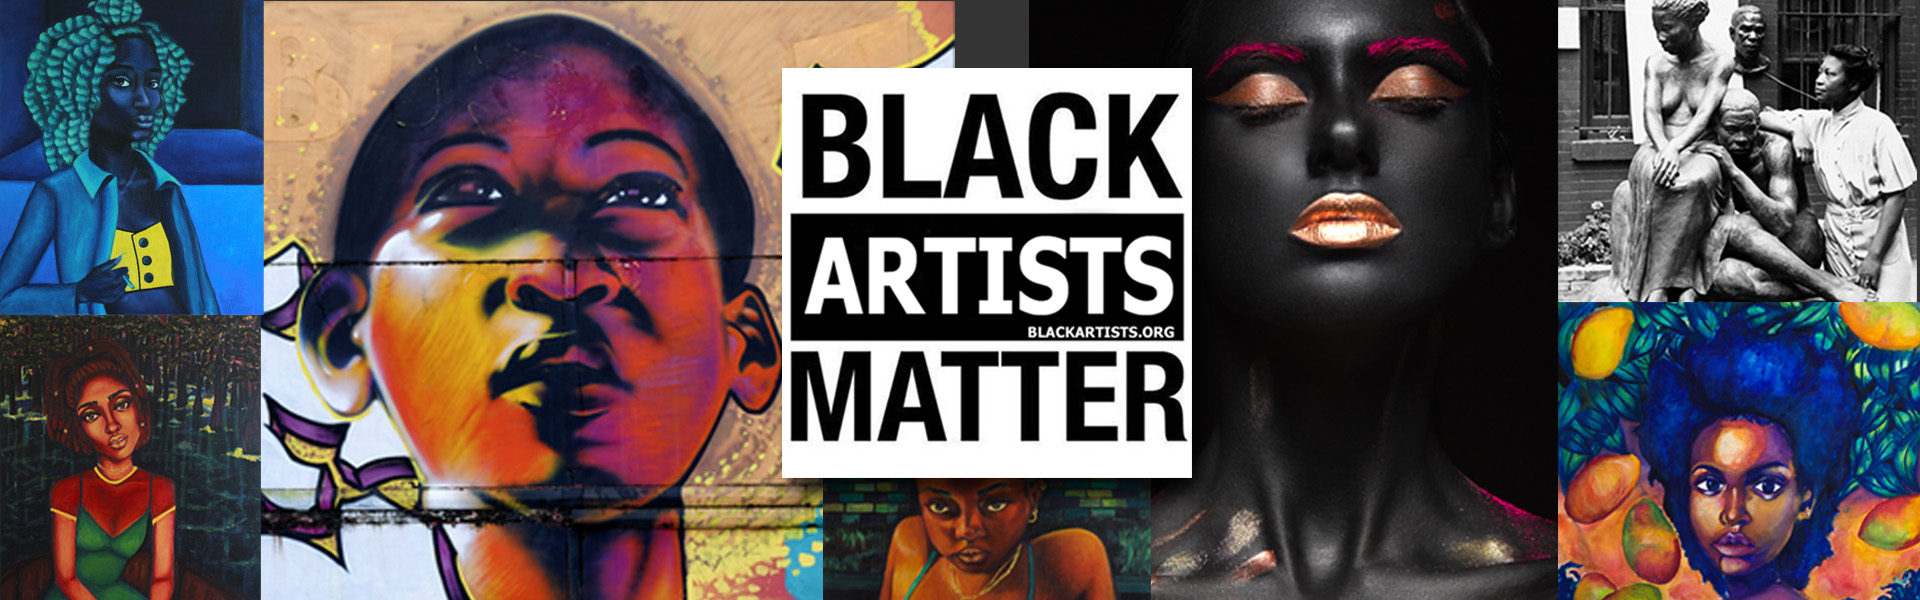 Black Artists Website Design by Tristate Business Solutions